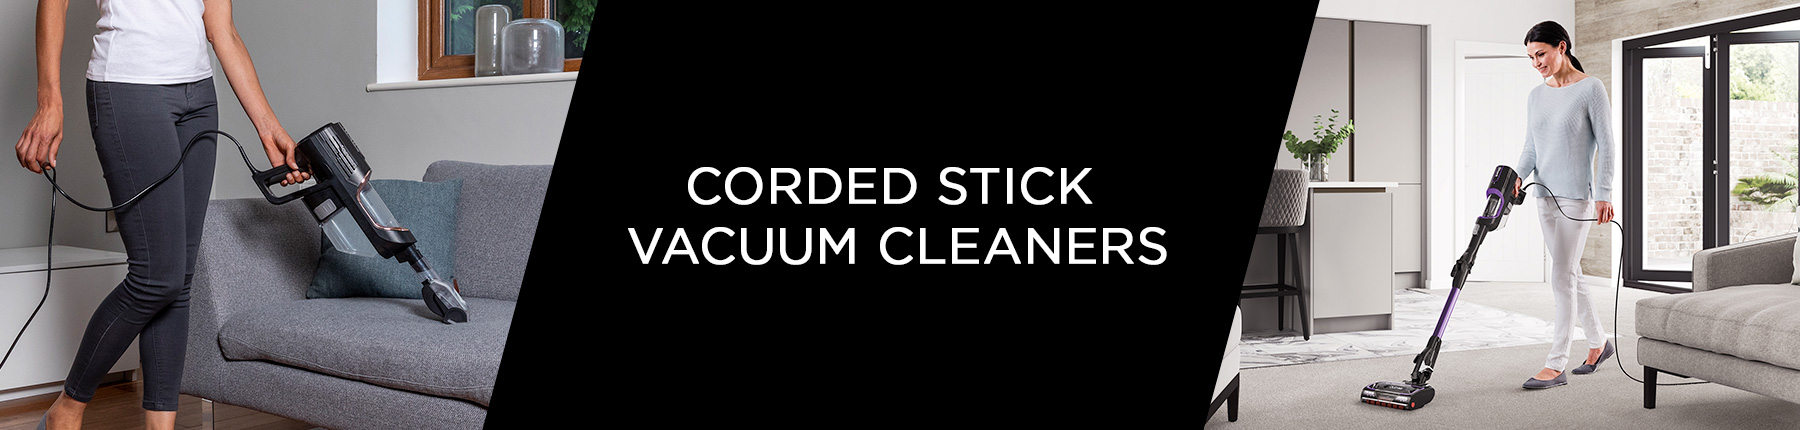 Banner Corded Sticks Vacuum Cleaners